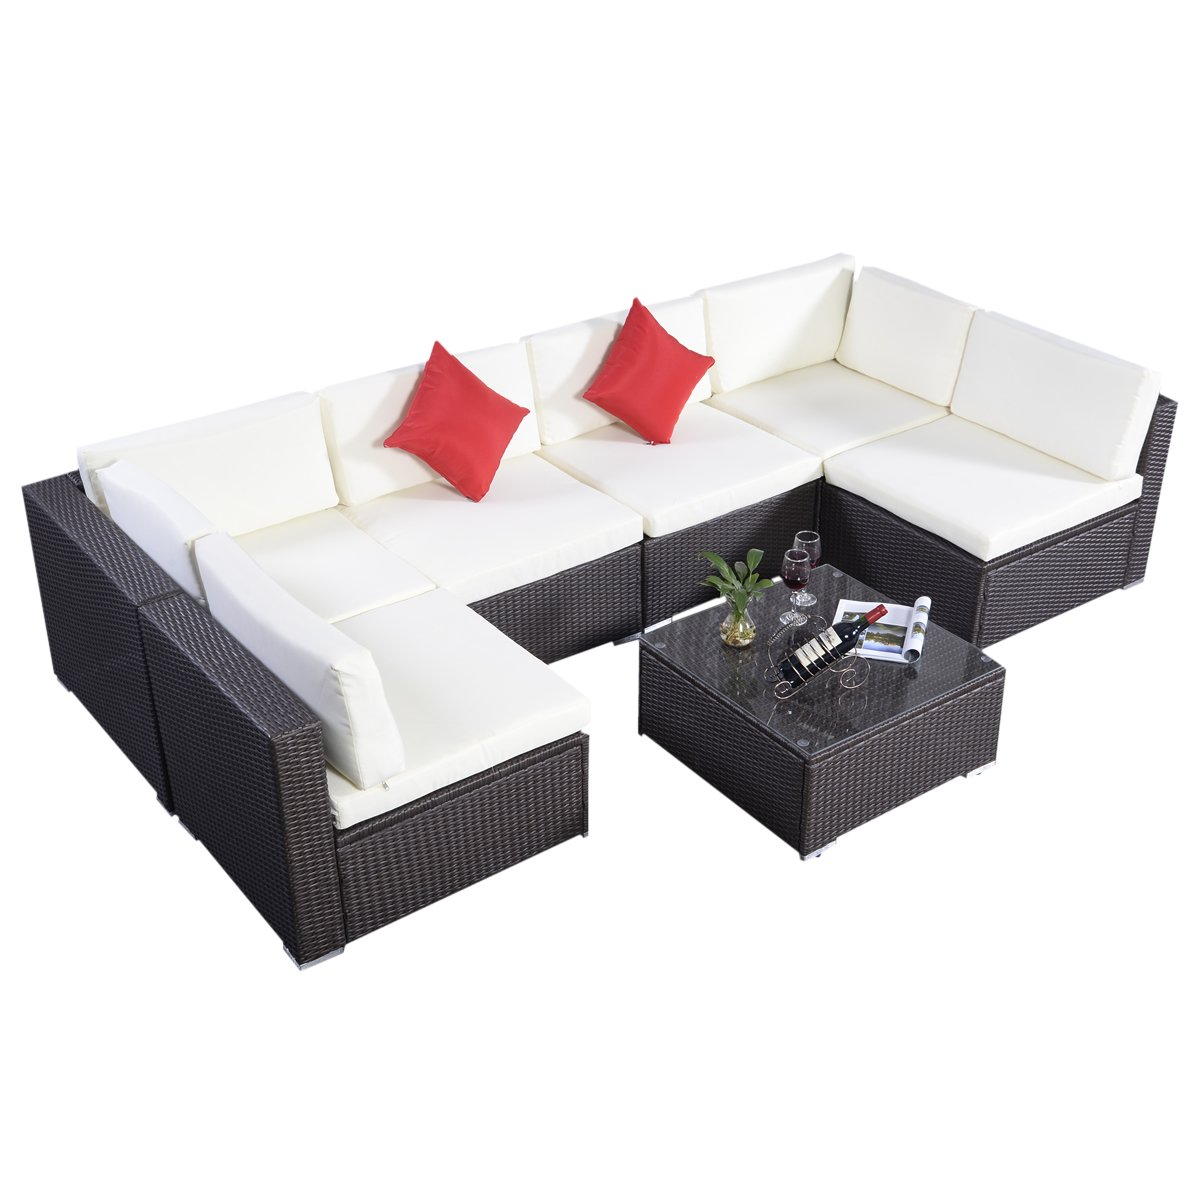 poly rattan lounge gartenm bel sitzgarnitur lounge set gartengarnitur rattan set garnitur dunkel. Black Bedroom Furniture Sets. Home Design Ideas